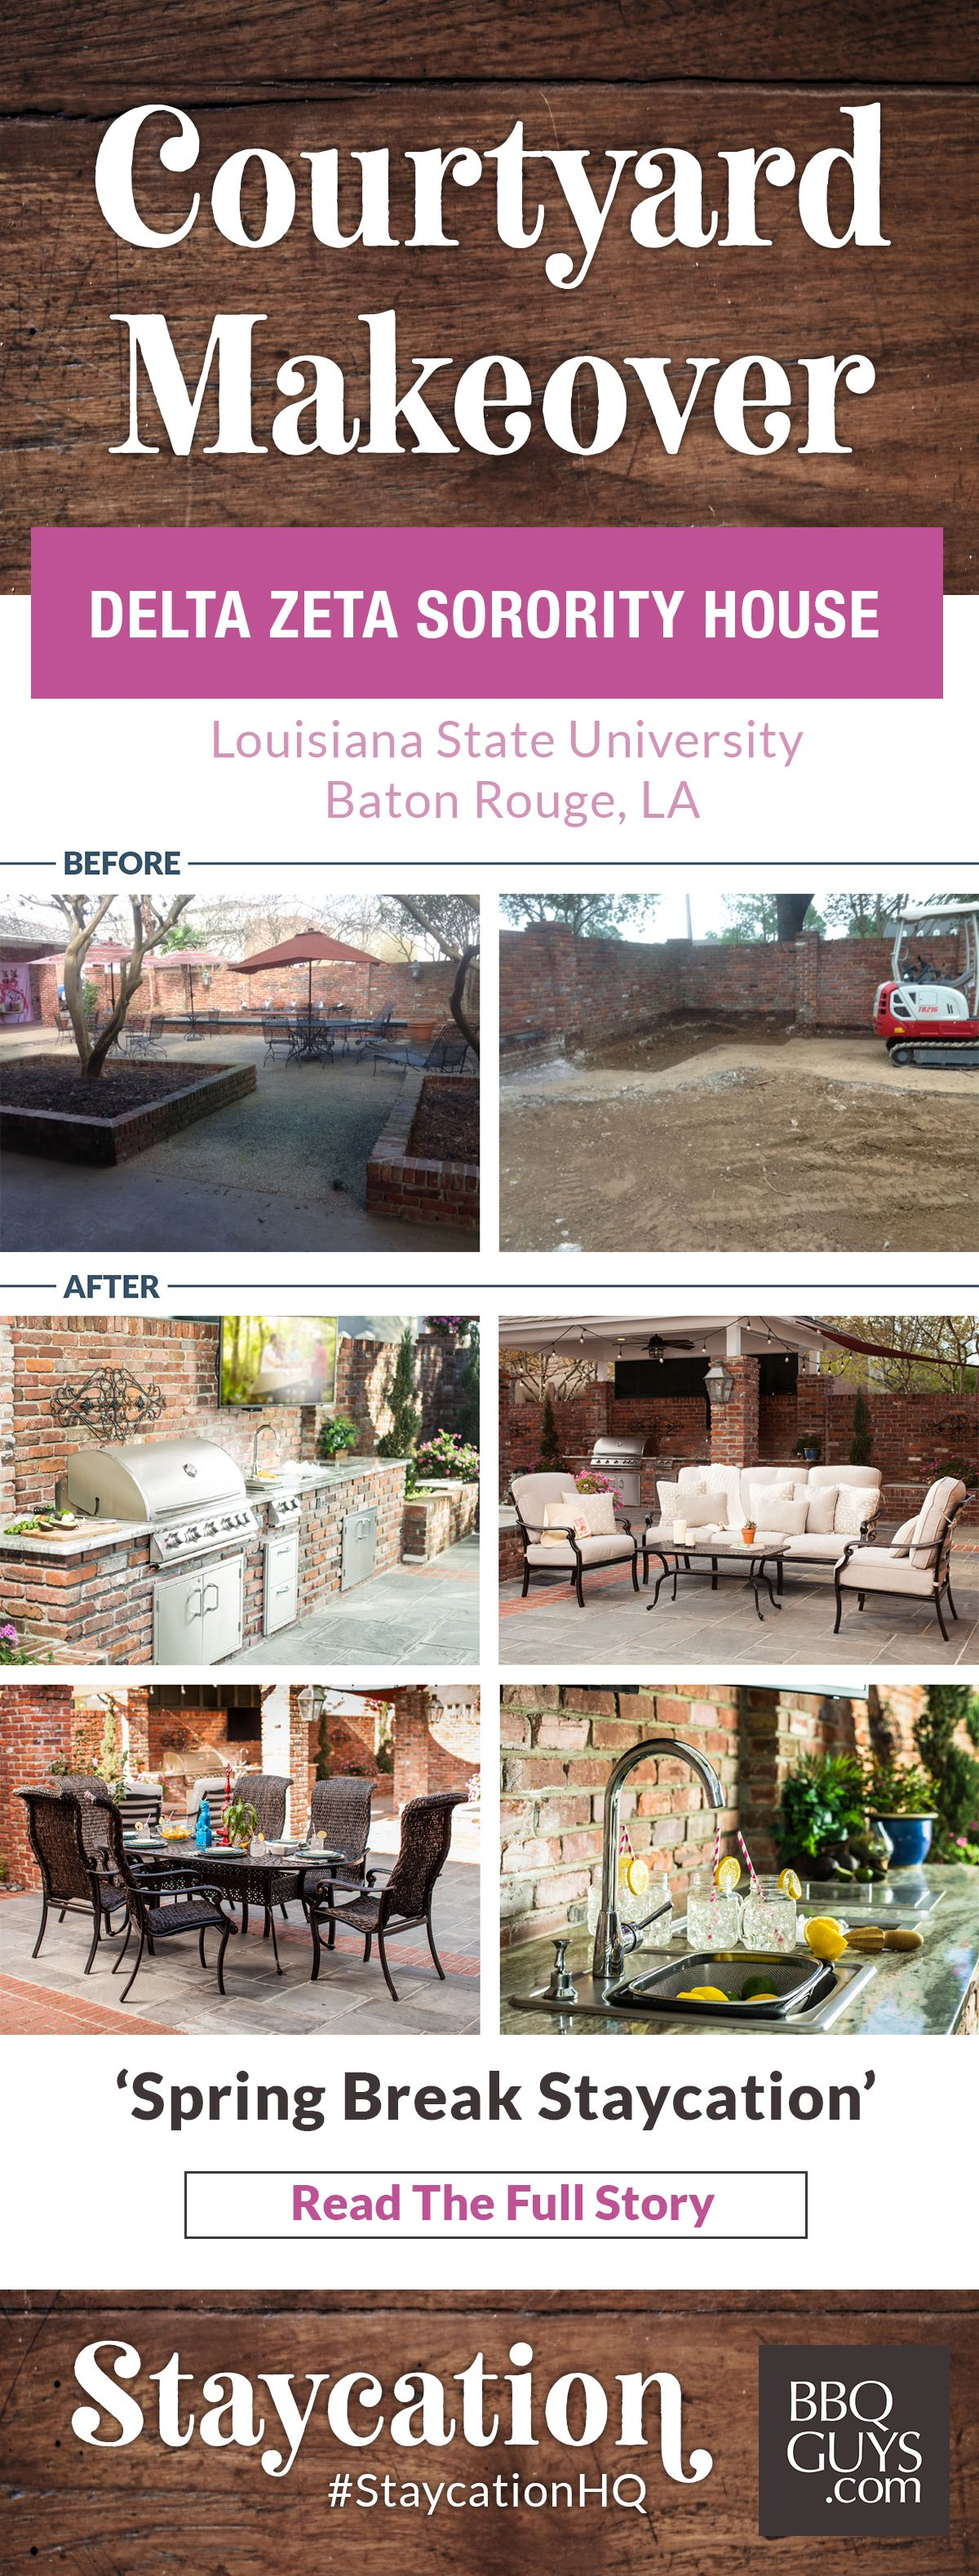 Spring Break Staycation When The Delta Zeta Sorority House At Louisiana State University Needed A Courtyard Upgrade They Tur Spring Break Staycation